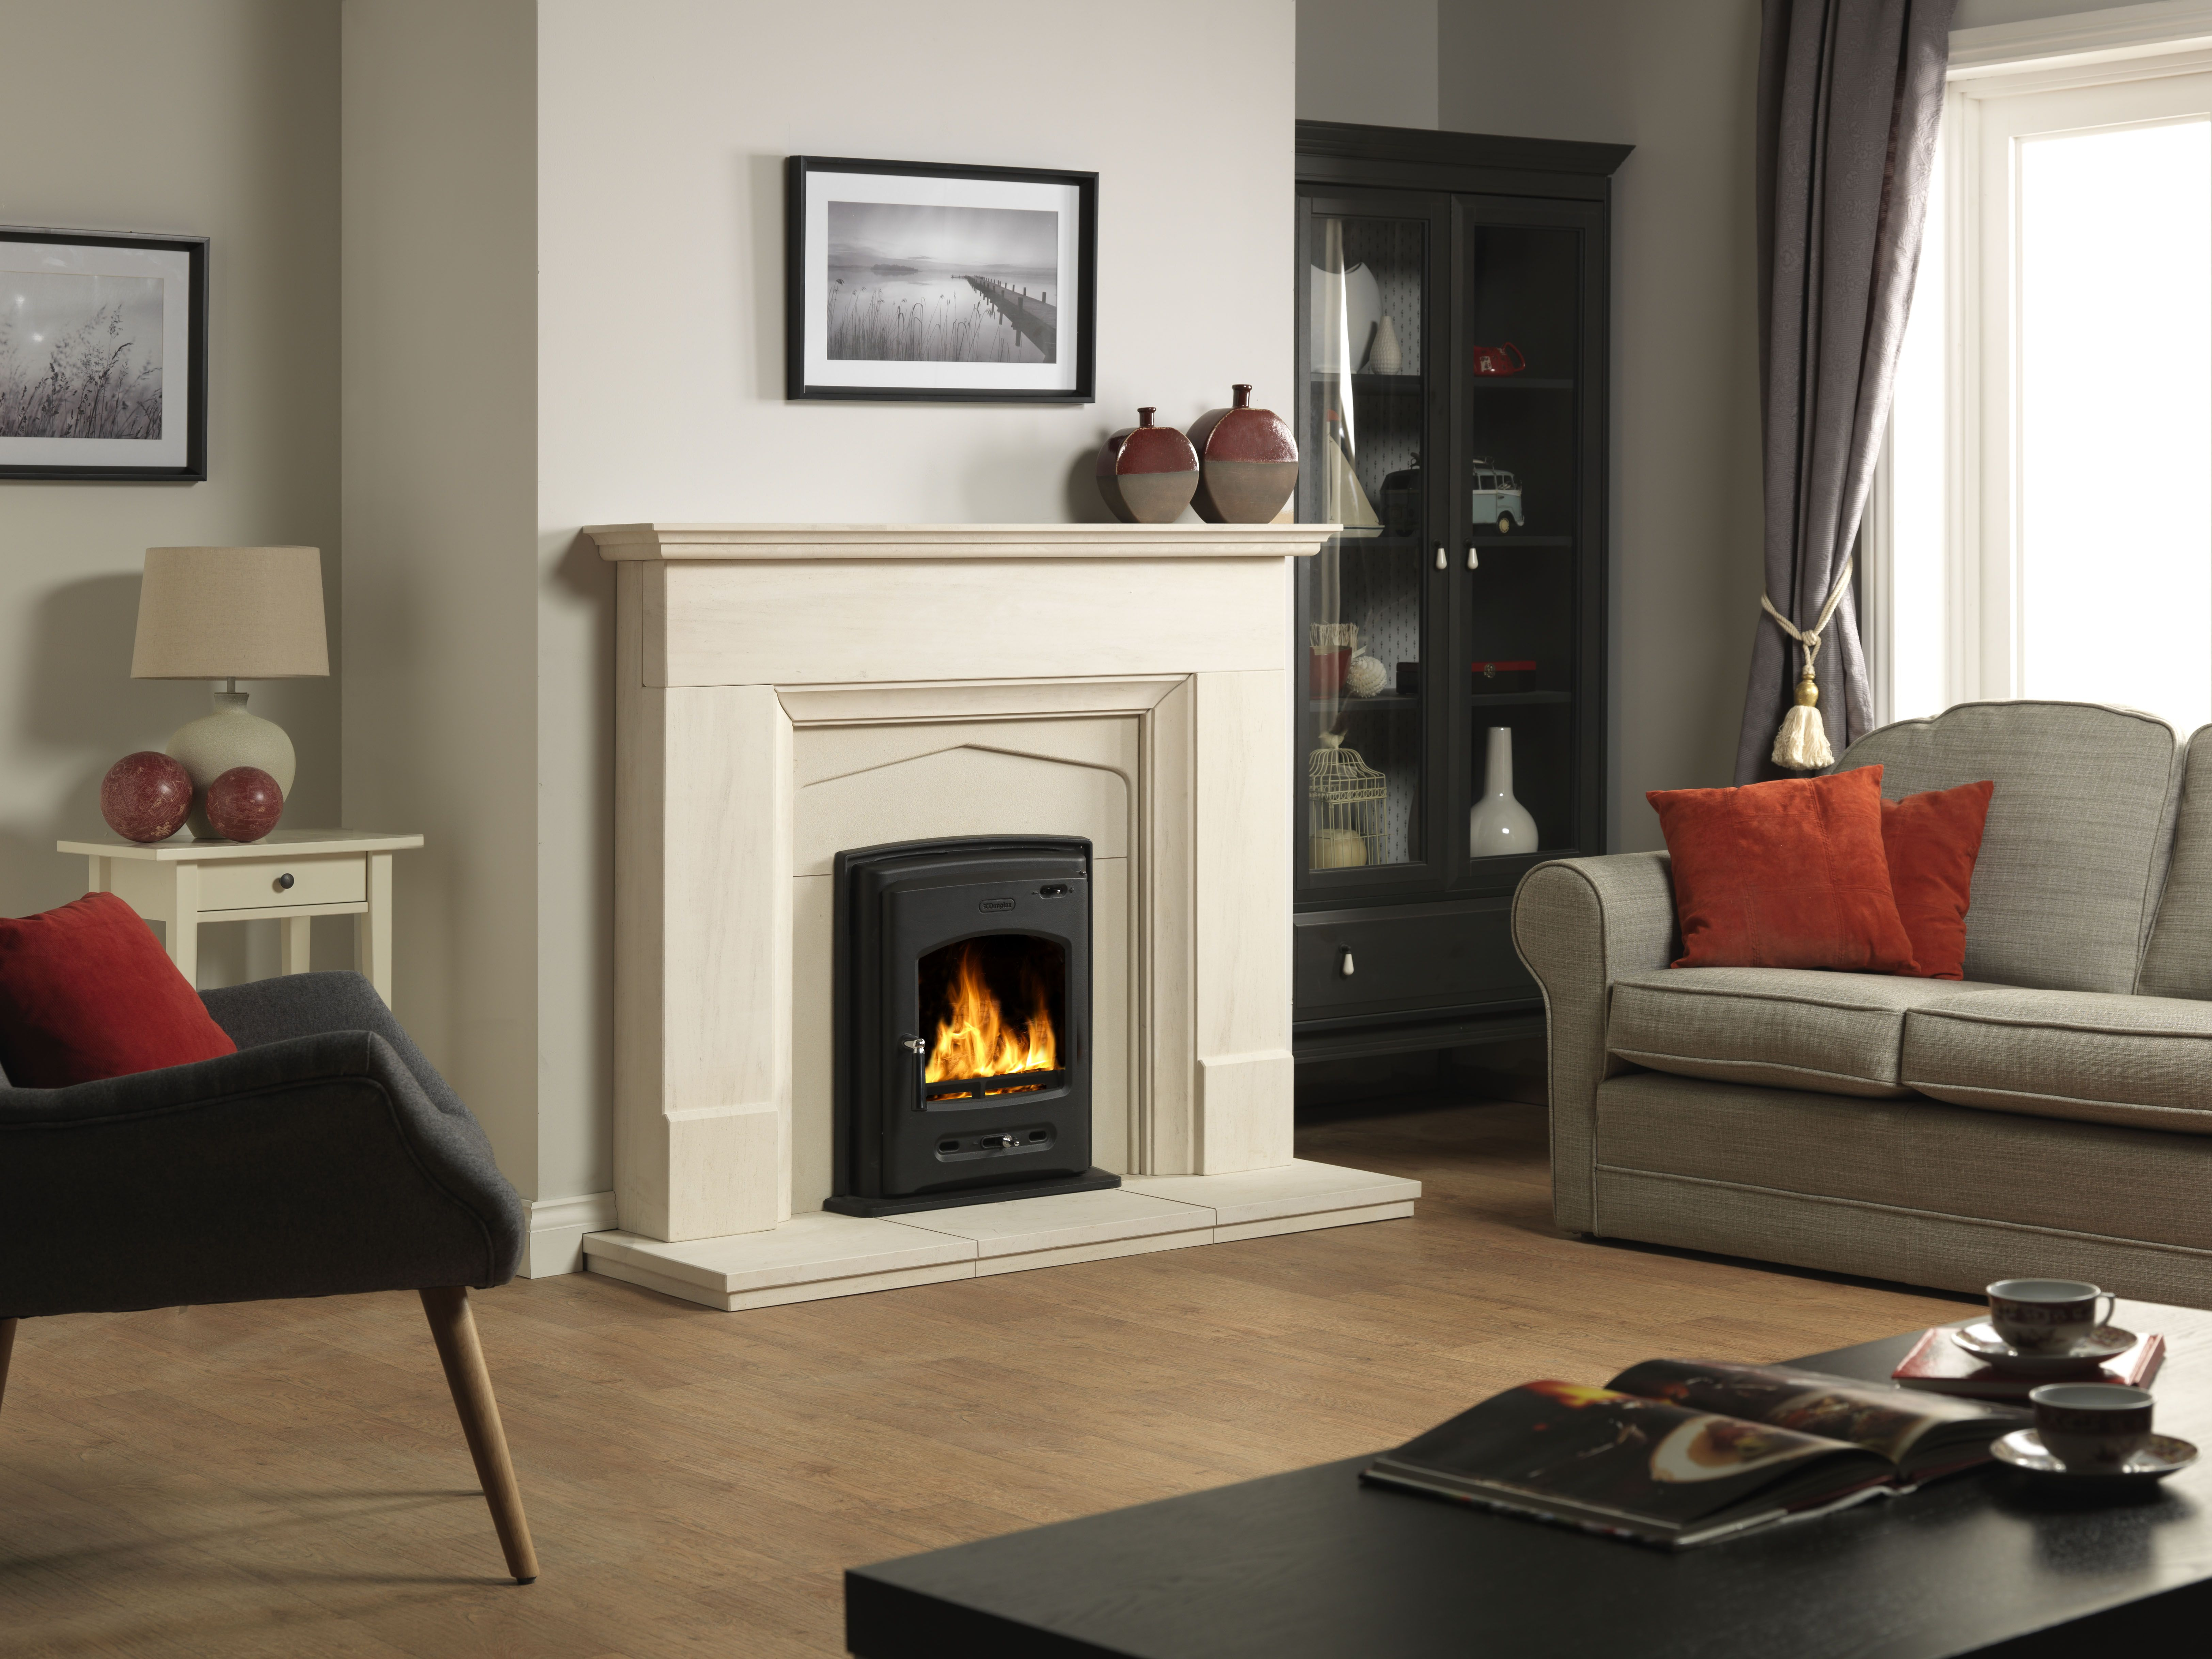 Inset Fireplace Beautiful Bellingham Inset Se Multi Fuel Stove Designed to Be Used